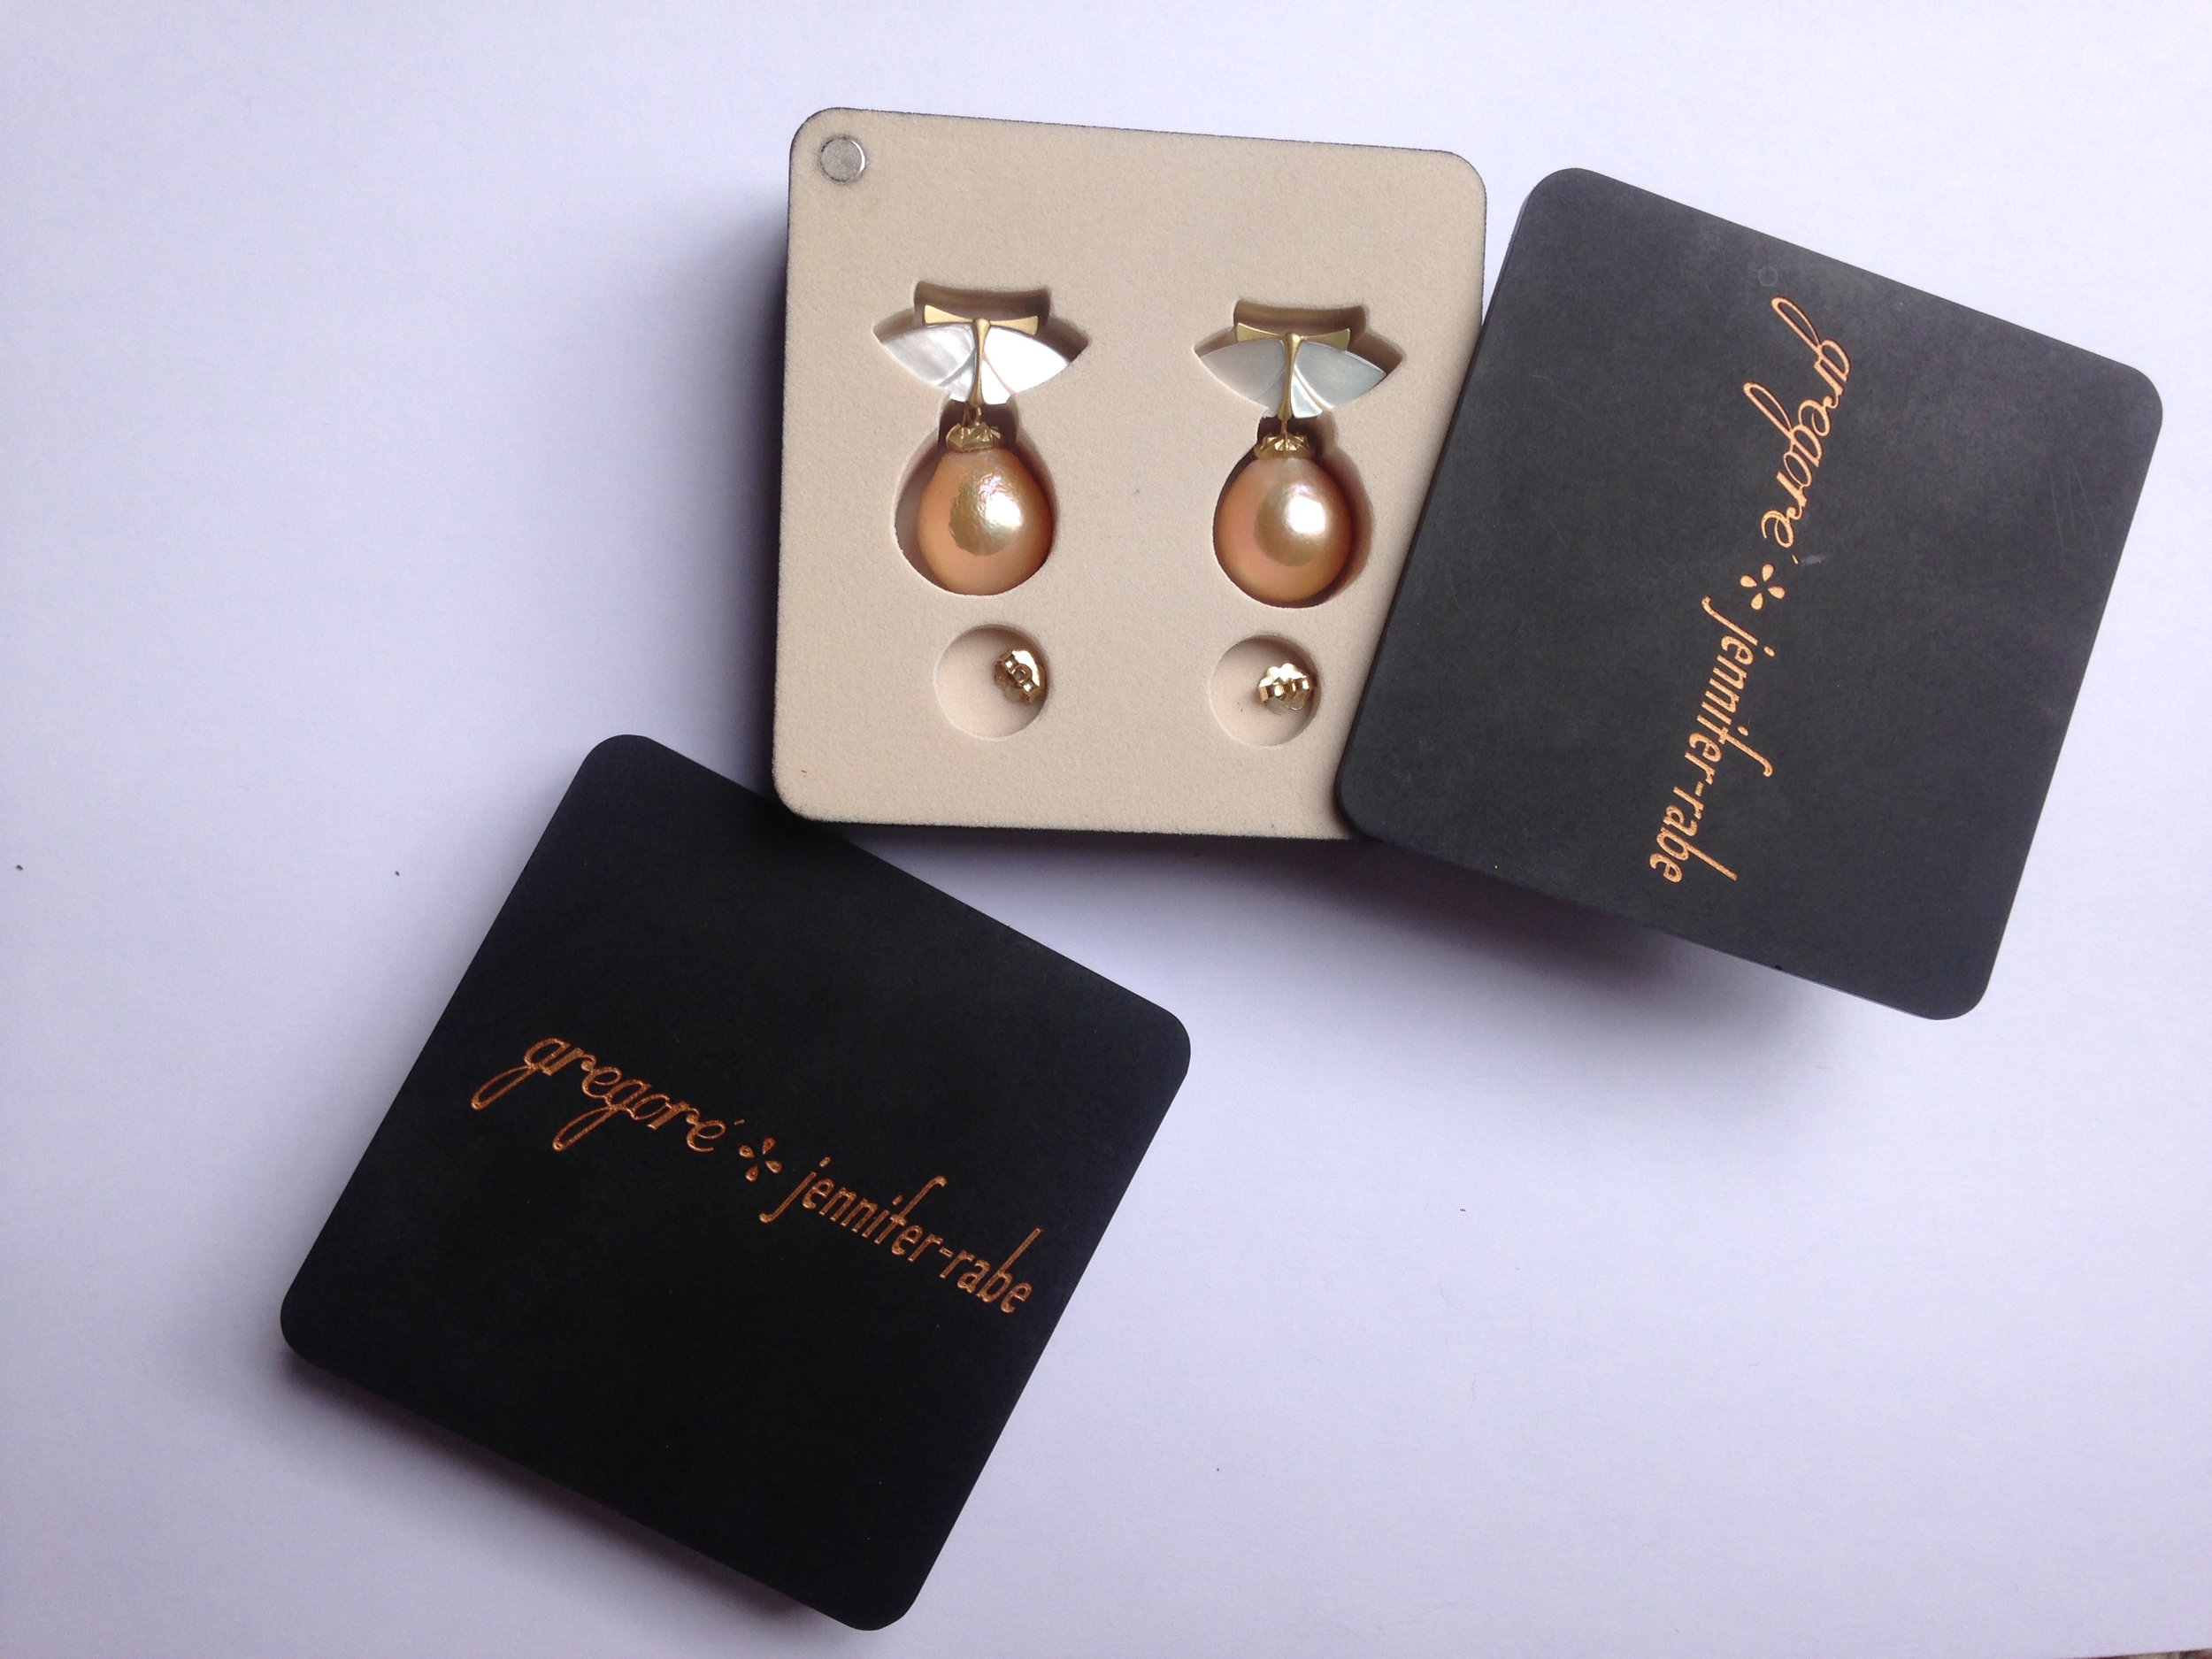 Custom Earring Box To Protect Earrings While Traveling